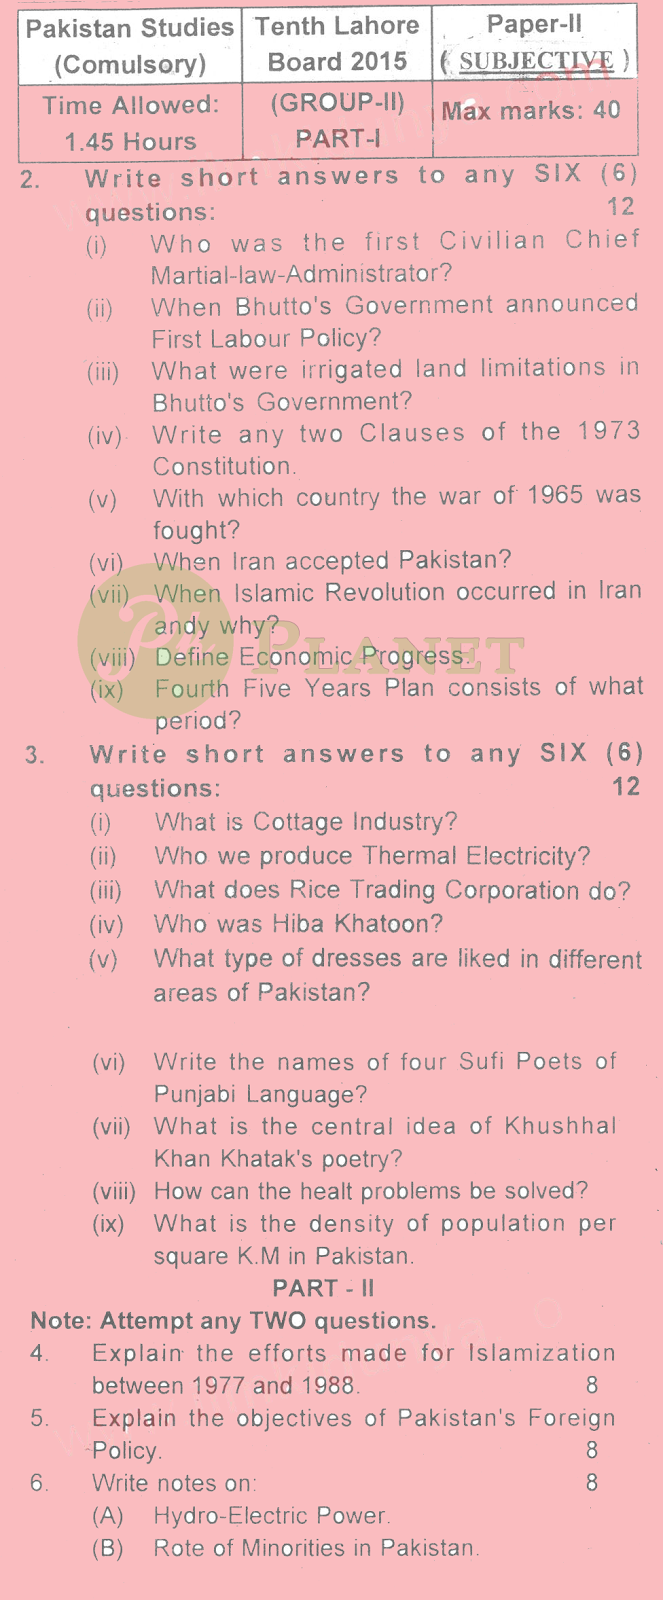 Past Papers of 10th Class Lahore Board 2015 Pak Studies in English